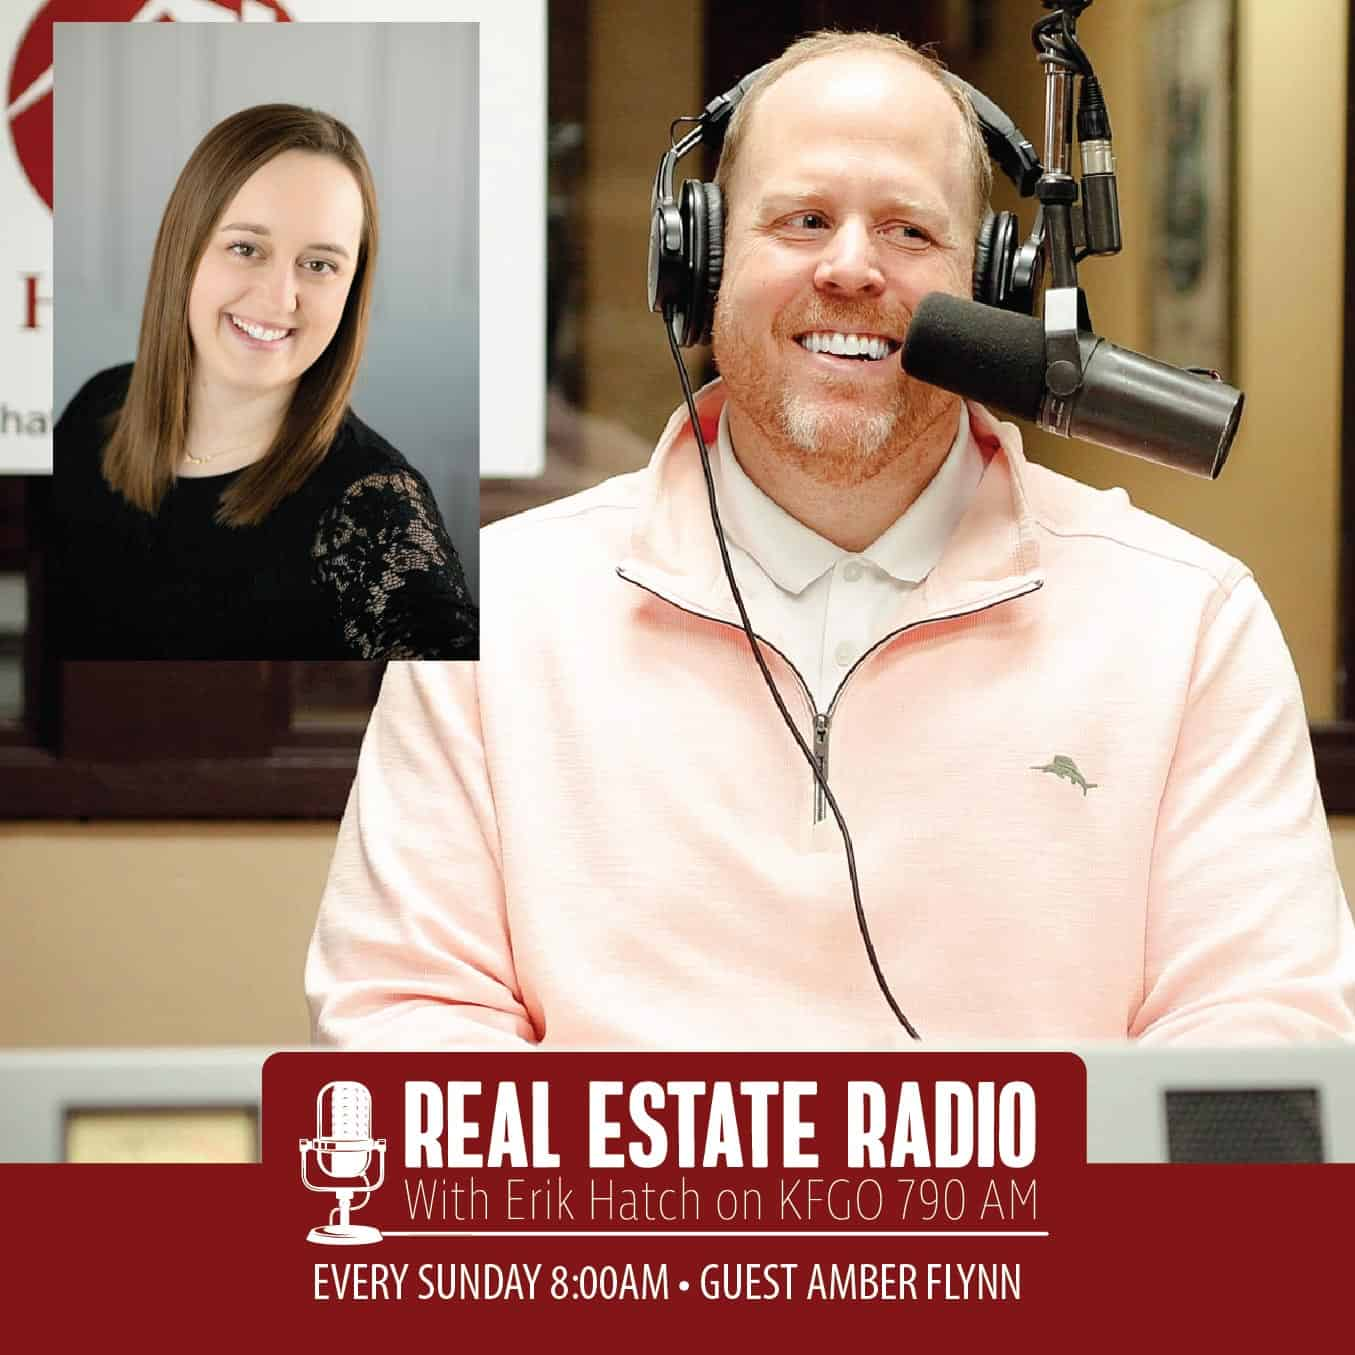 Grand Forks Real Estate Market VS Fargo Real Estate Market with Amber Flynn